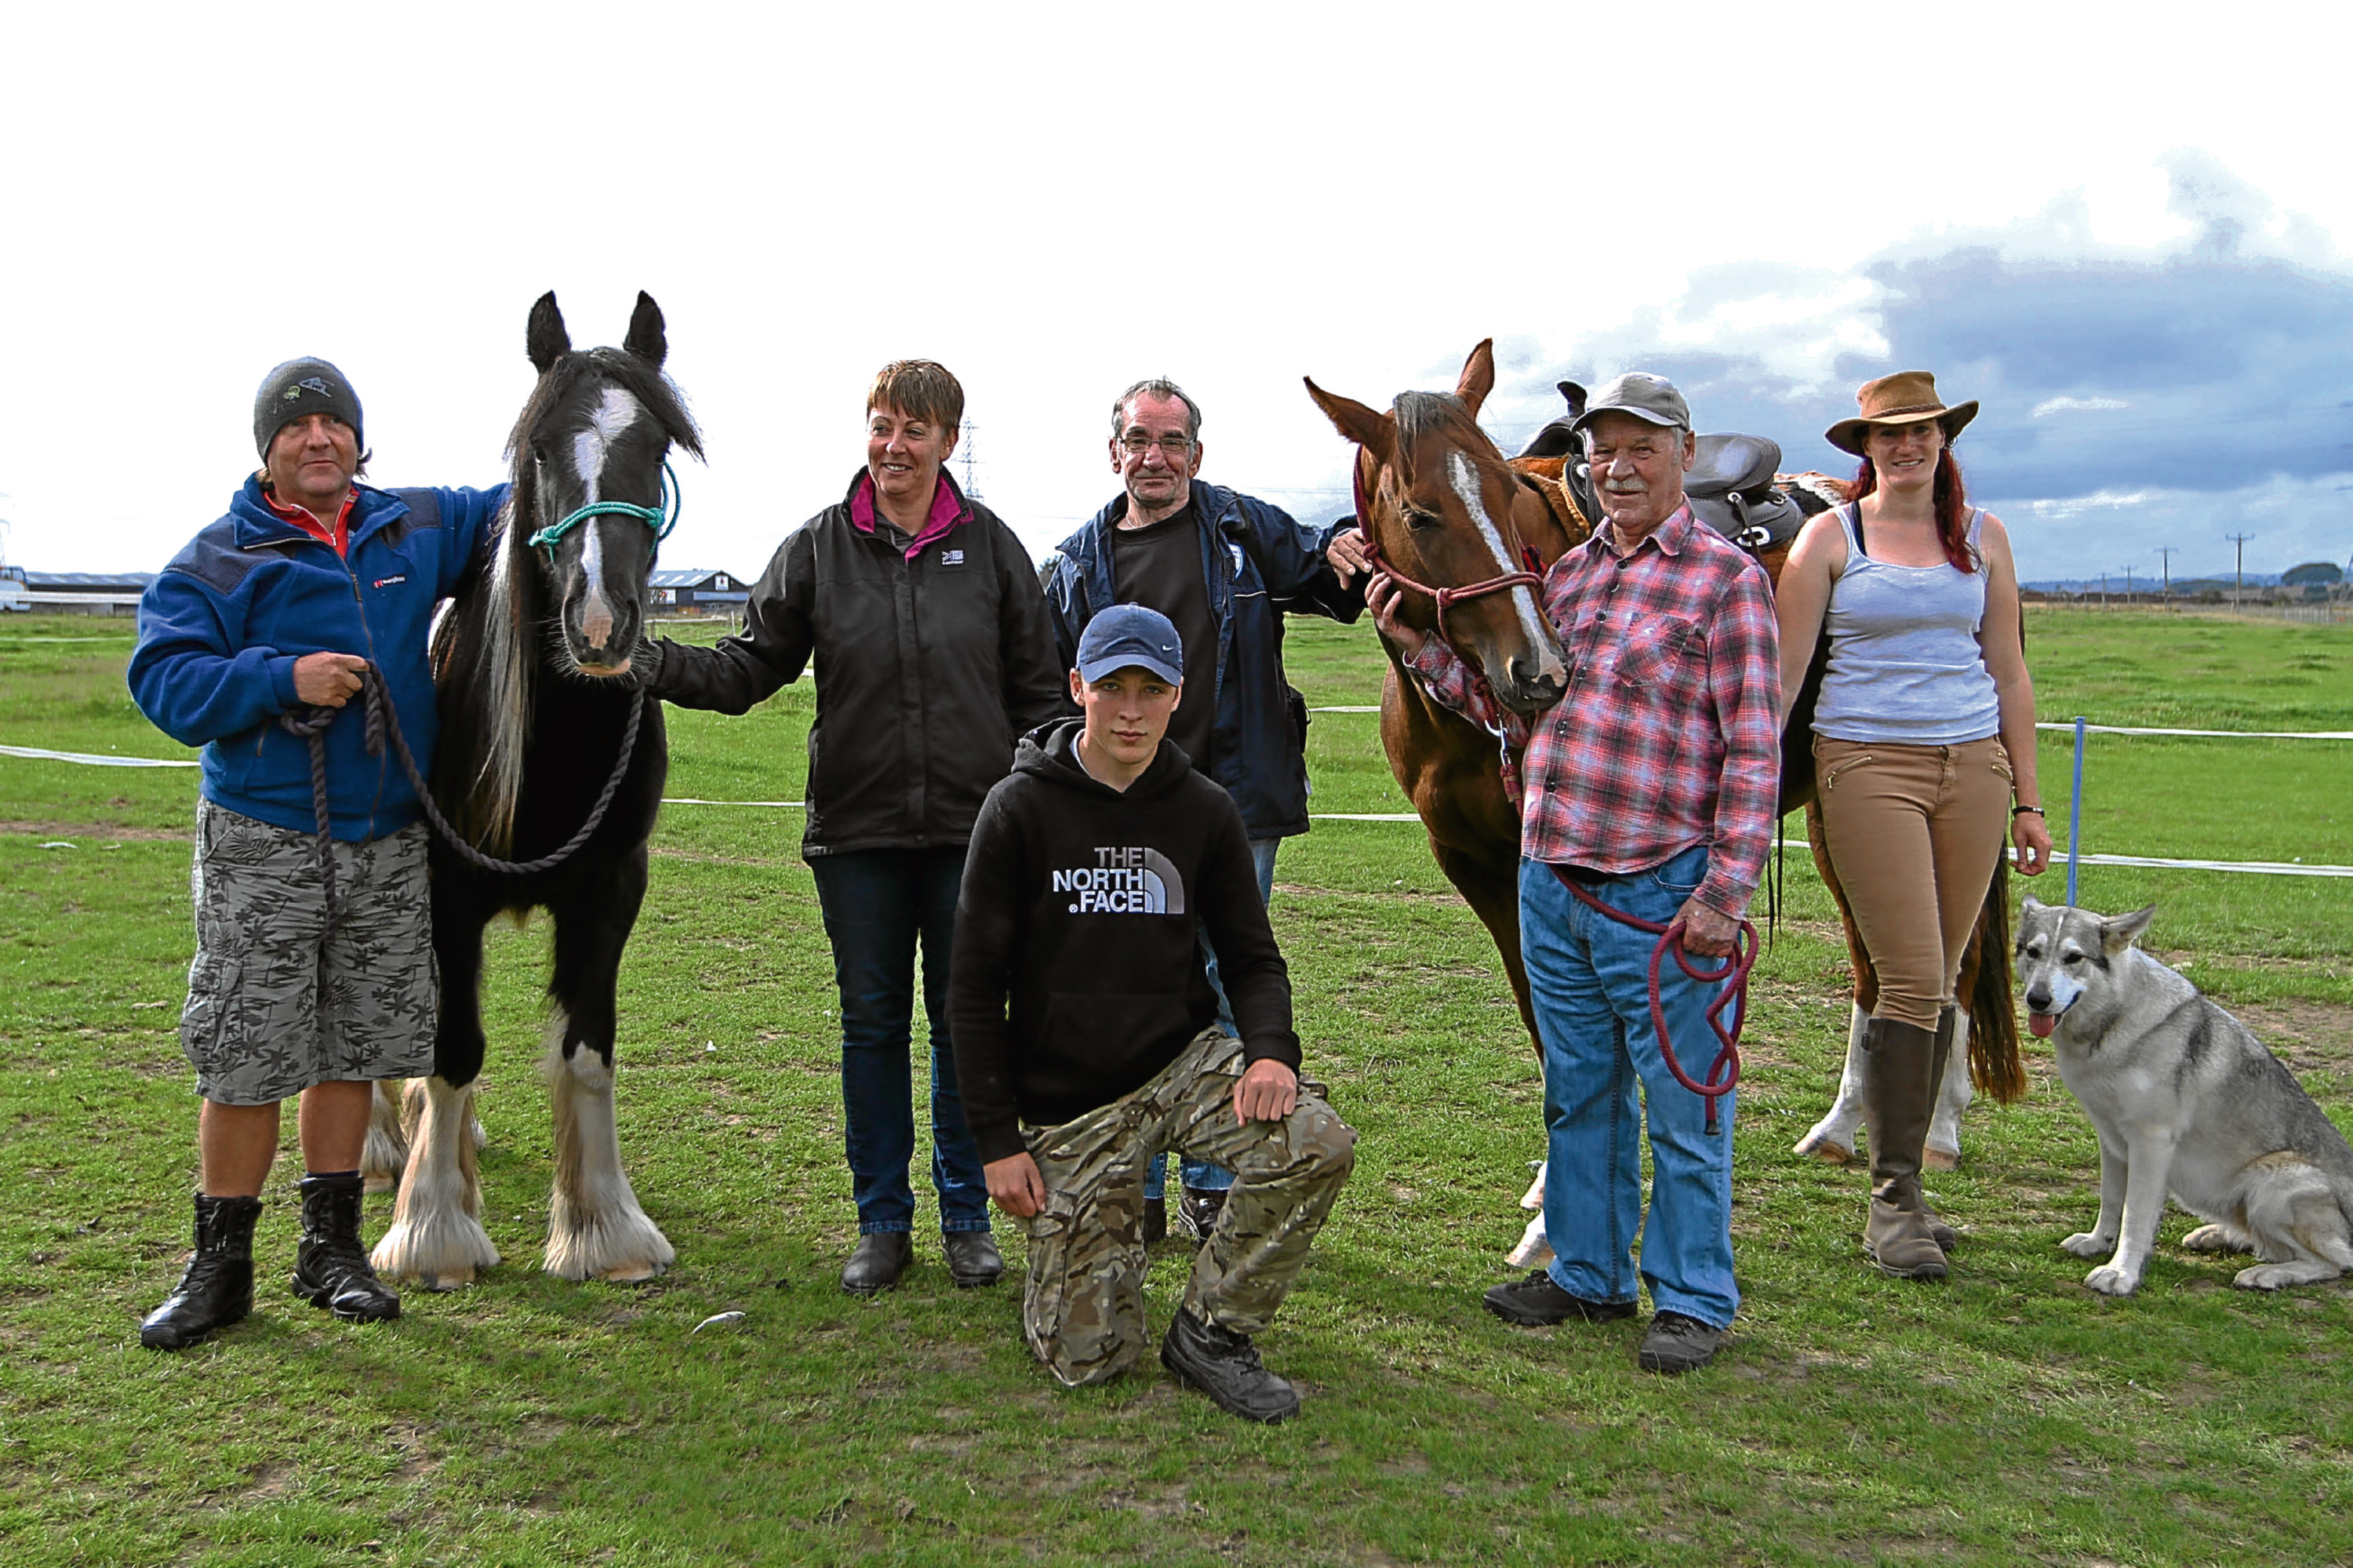 Tommy Hays, Sammy, Alison Dunlop (trustee of the charity), John Millar, Spice, John Byrne, Jessica Probst (founder of the charity) and, front, Timo Condie.